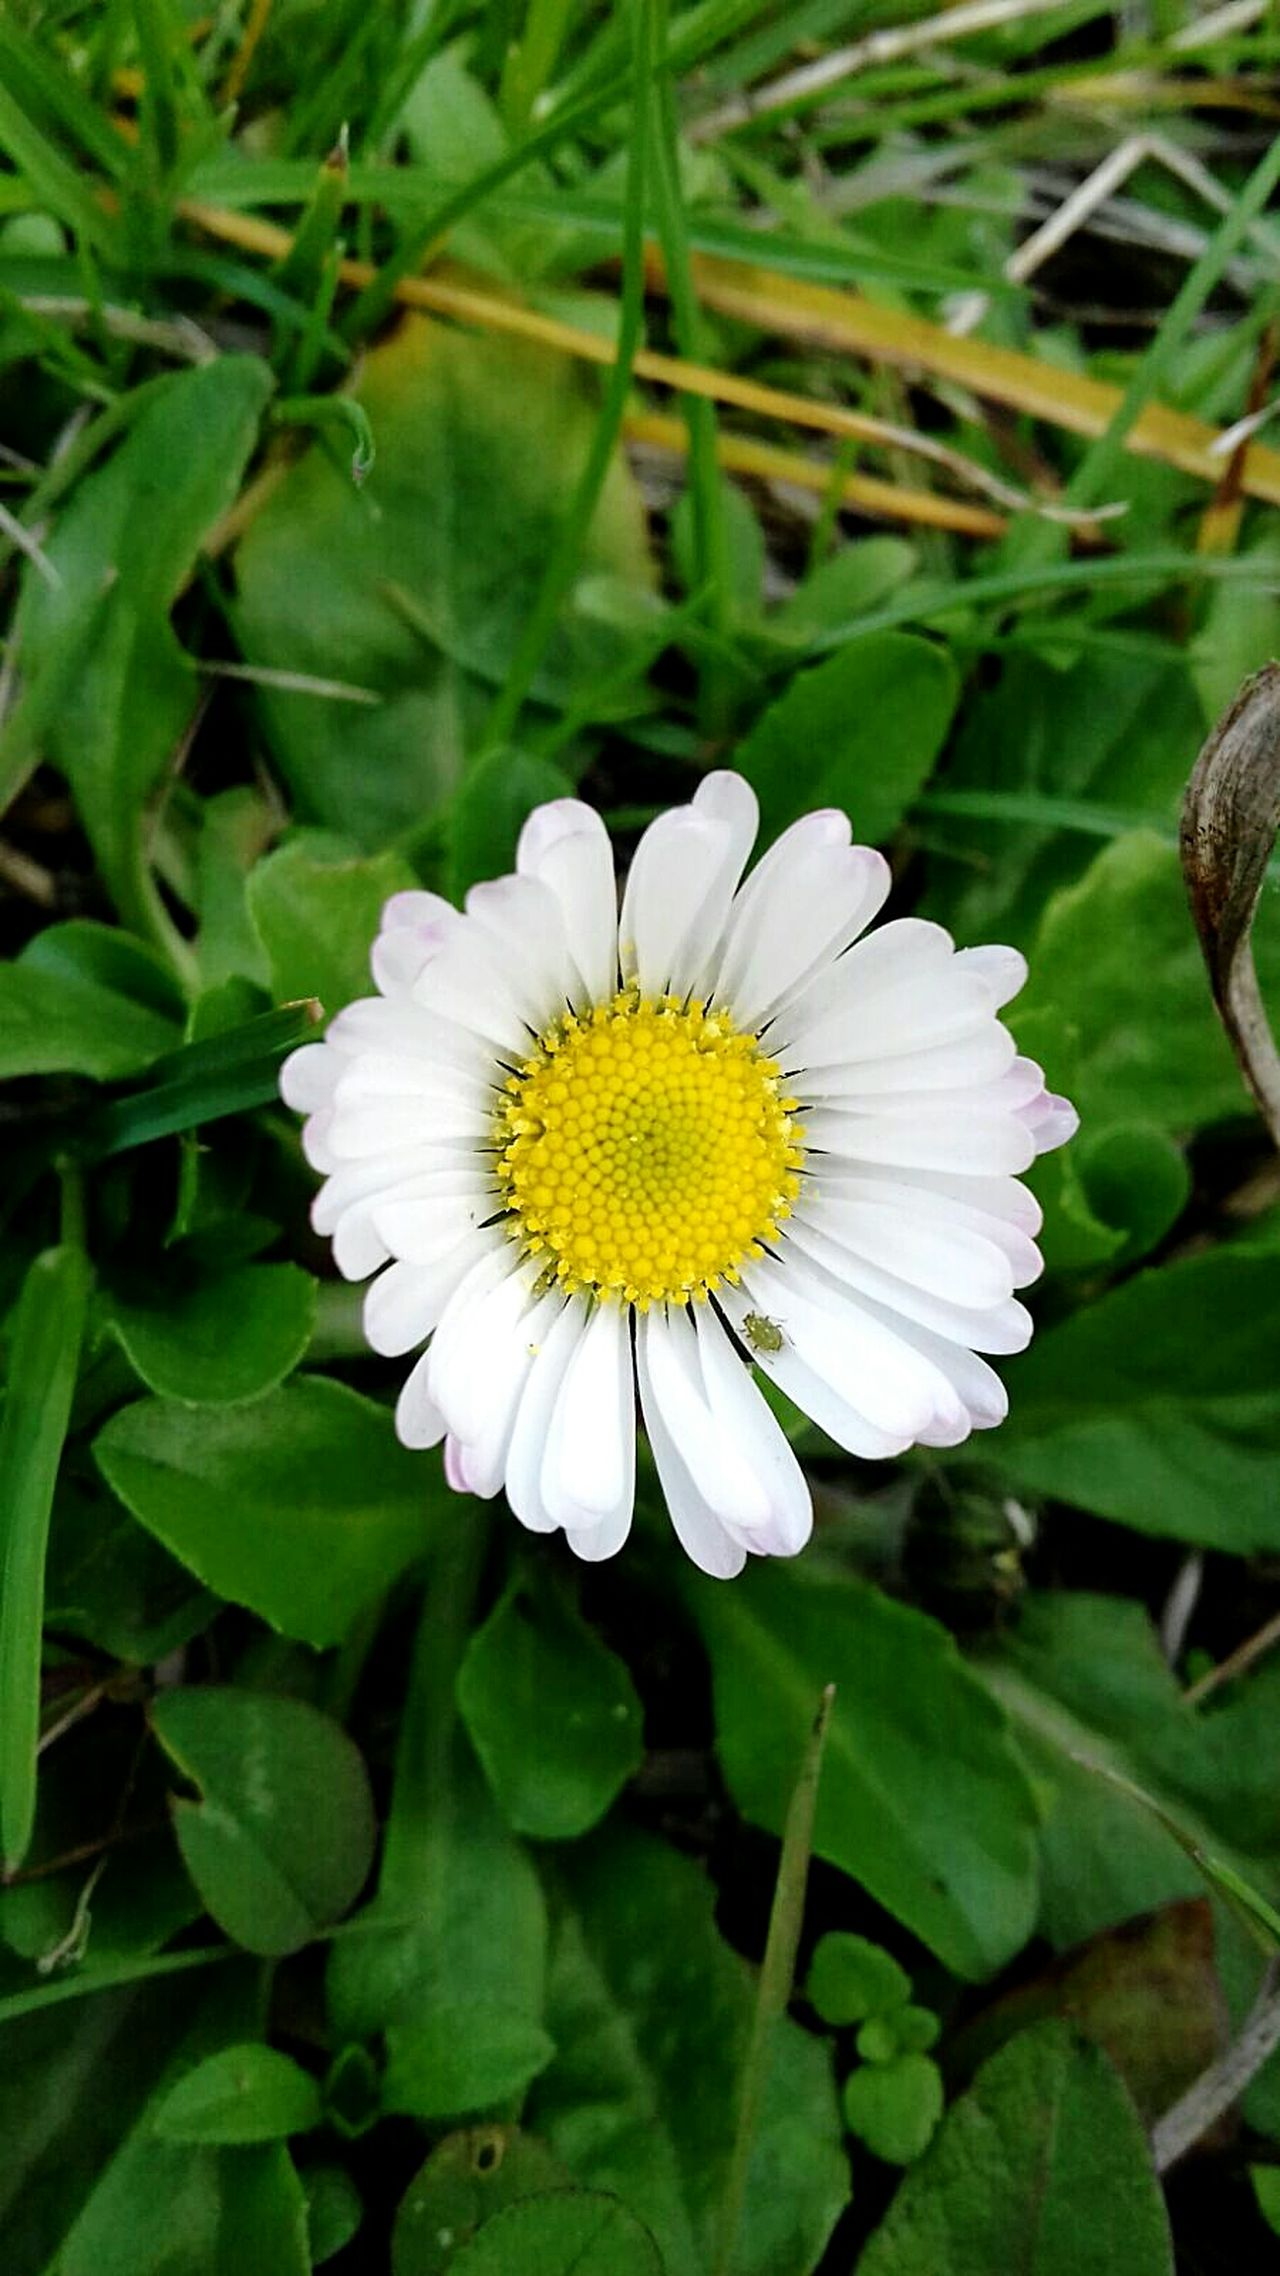 Flower Beauty In Nature Nature Plant Fragility Flower Head Freshness Beauty Growth Petal Close-up Leaf Outdoors No People Day Daisy Close Up Spring Is Coming  Spring Simplicity Pureness Grass In The Grass Simply Beautiful